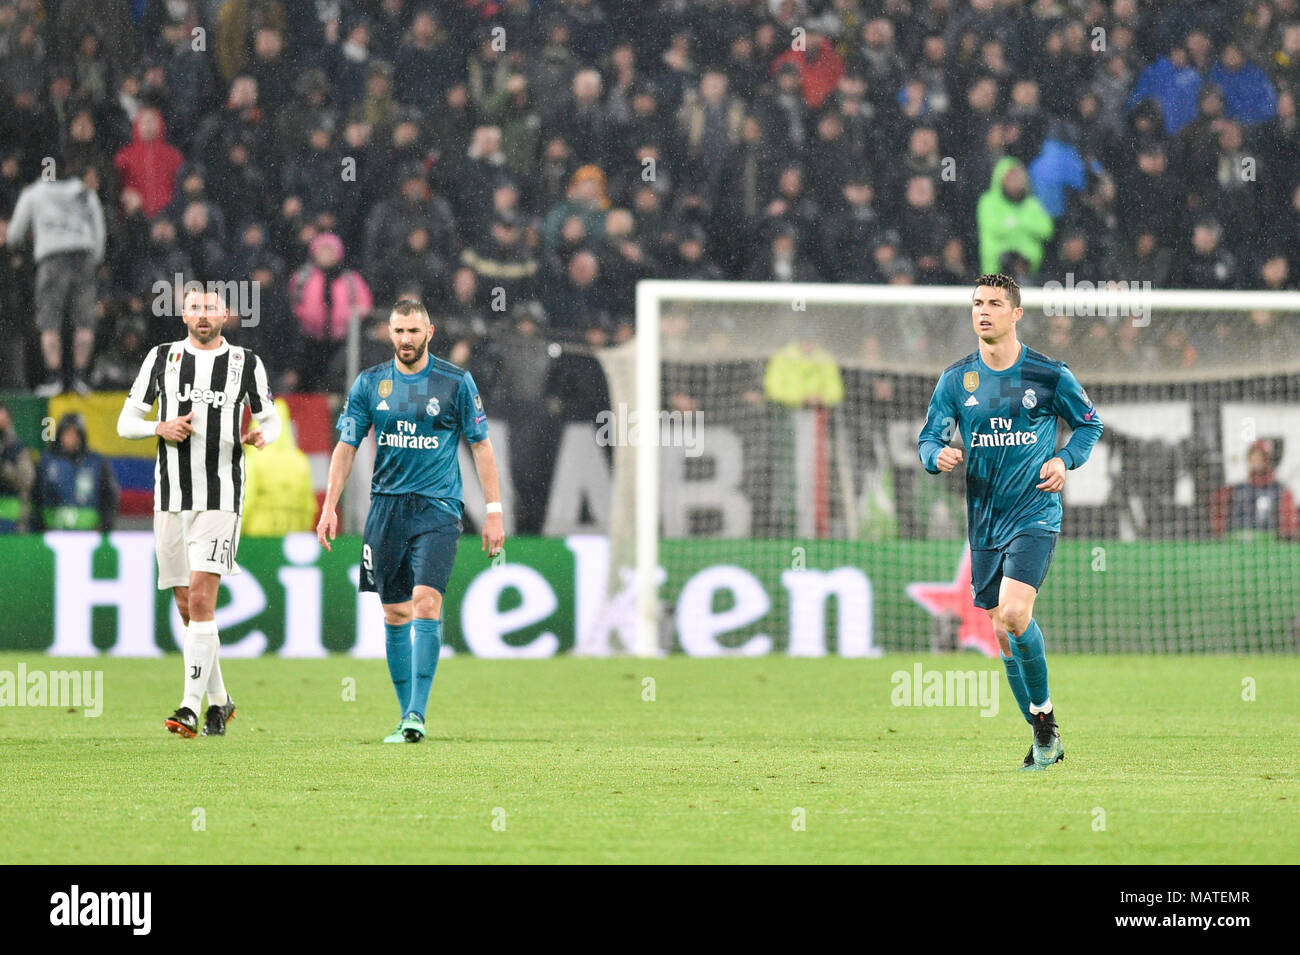 8f0f73766 Juventus Football Club Stock Photos   Juventus Football Club Stock ...